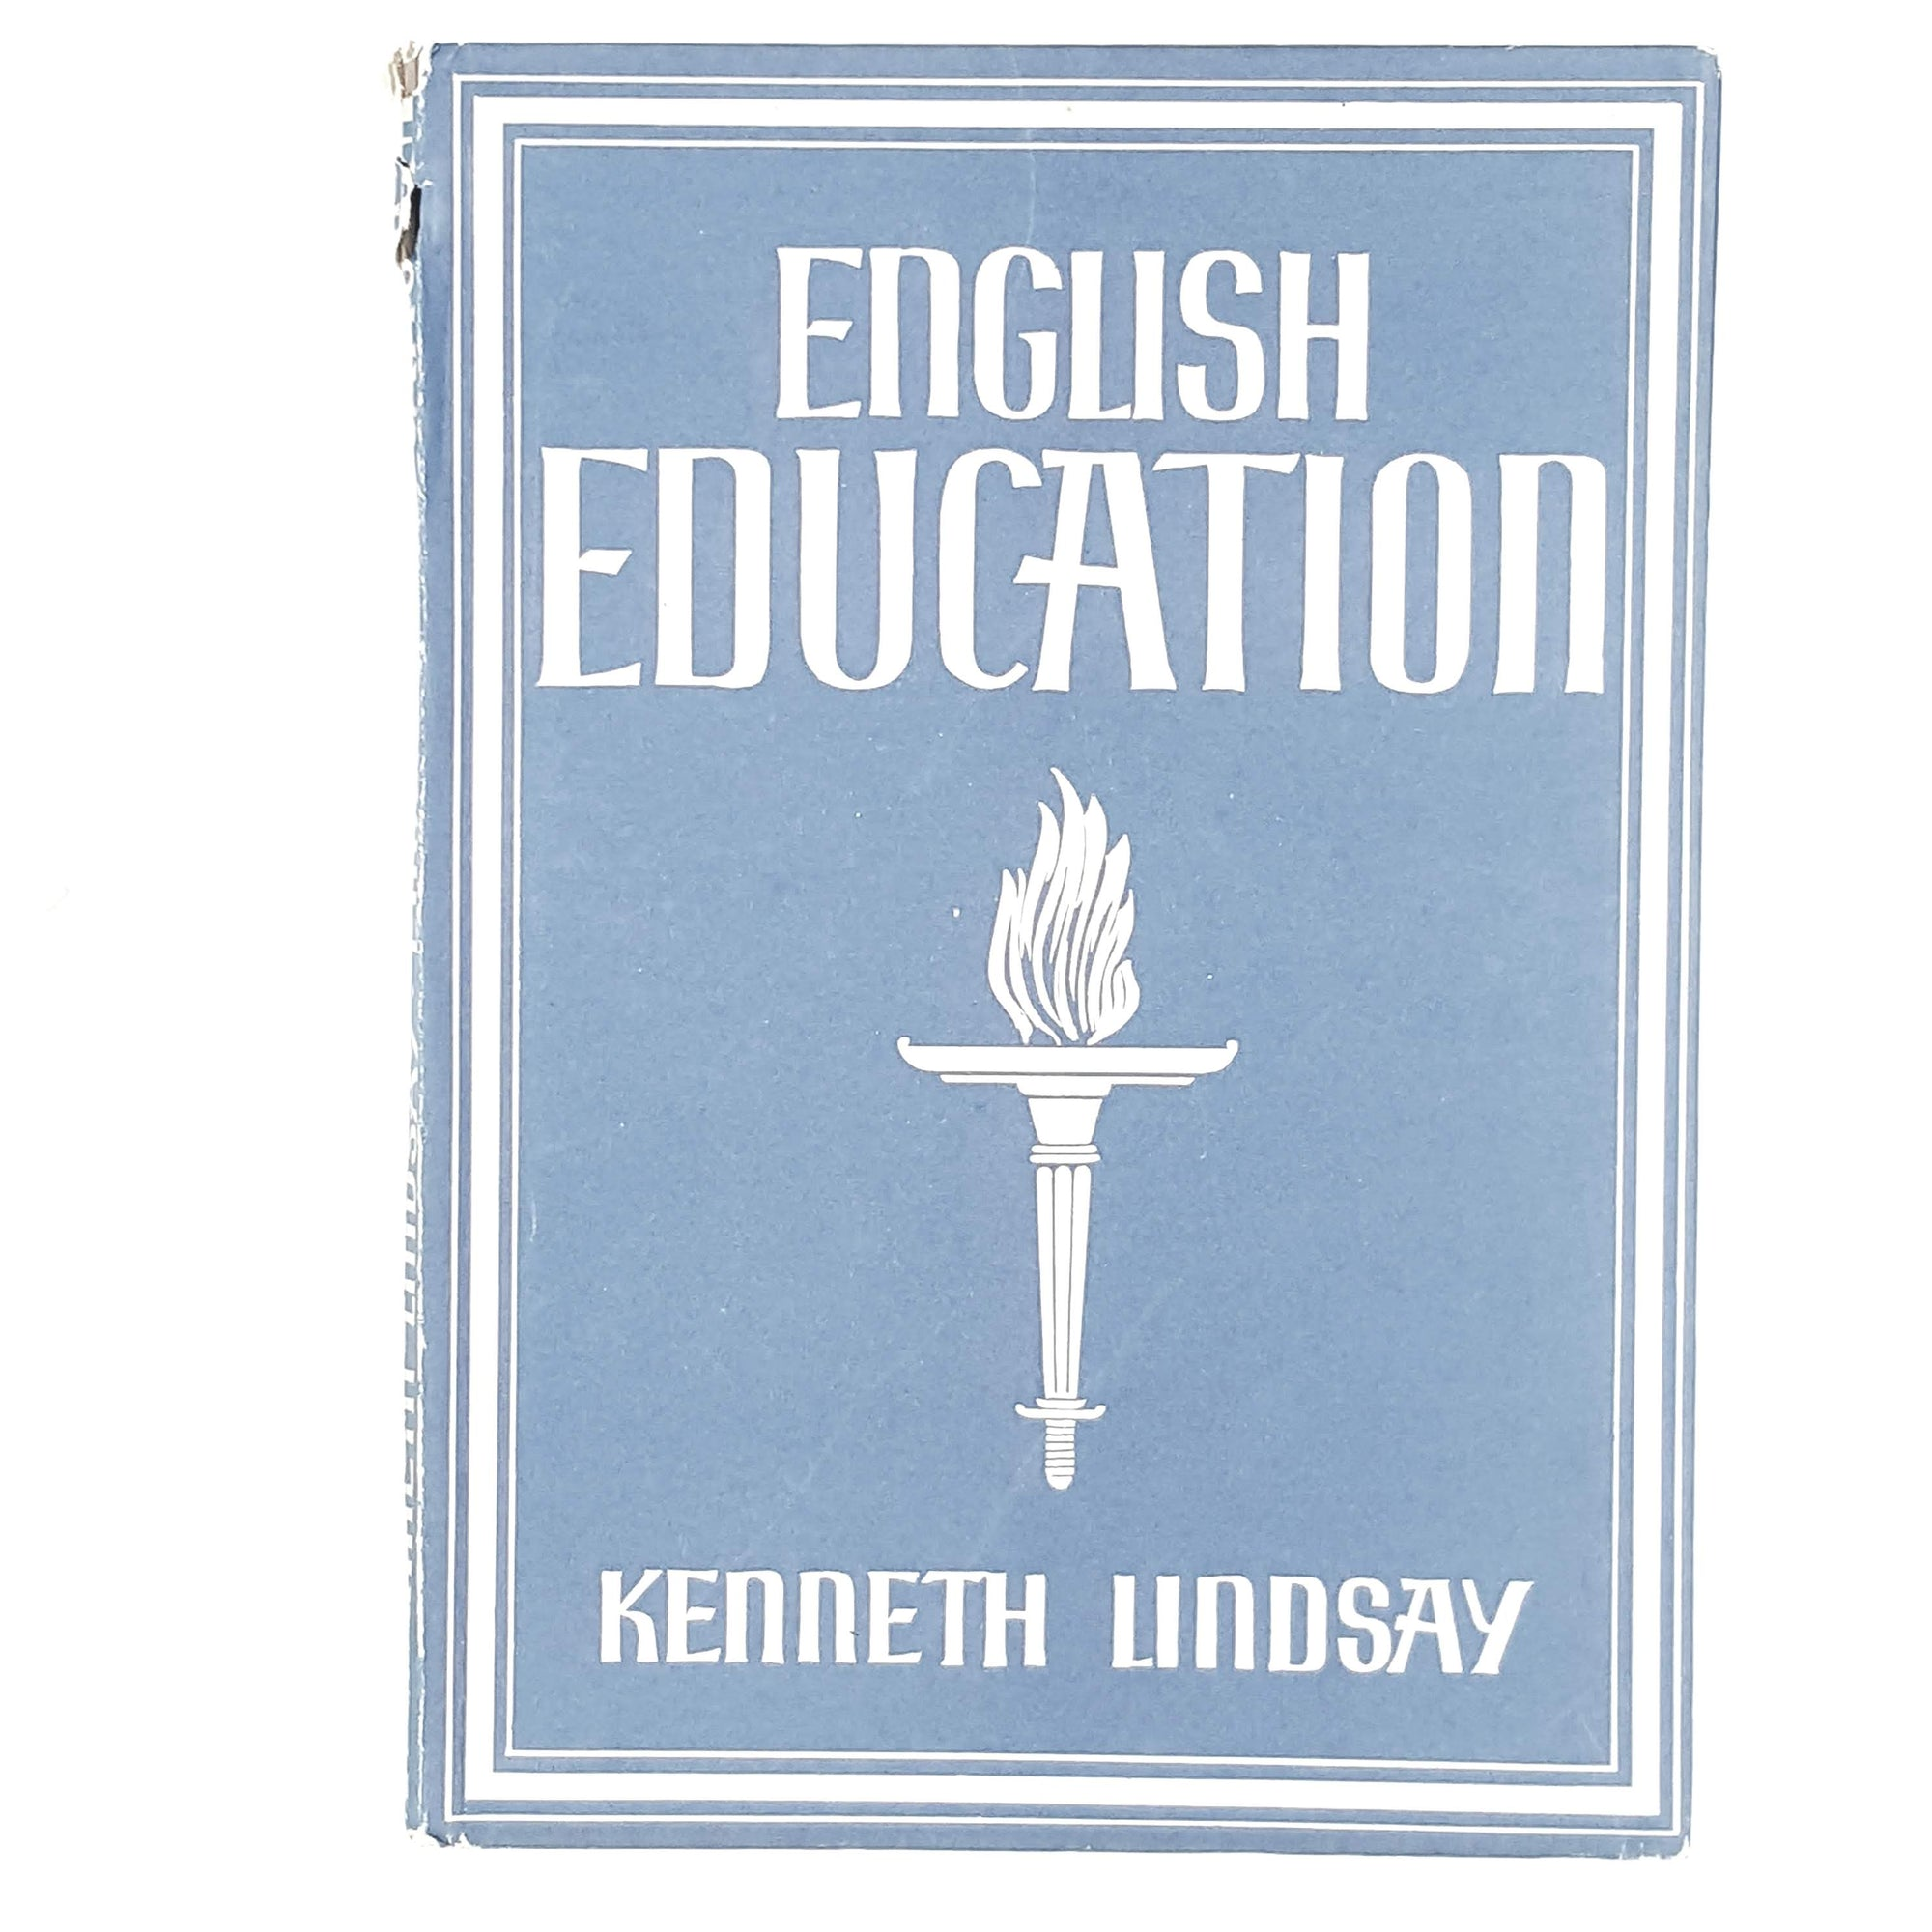 English Education by Kenneth Lindsay 1941